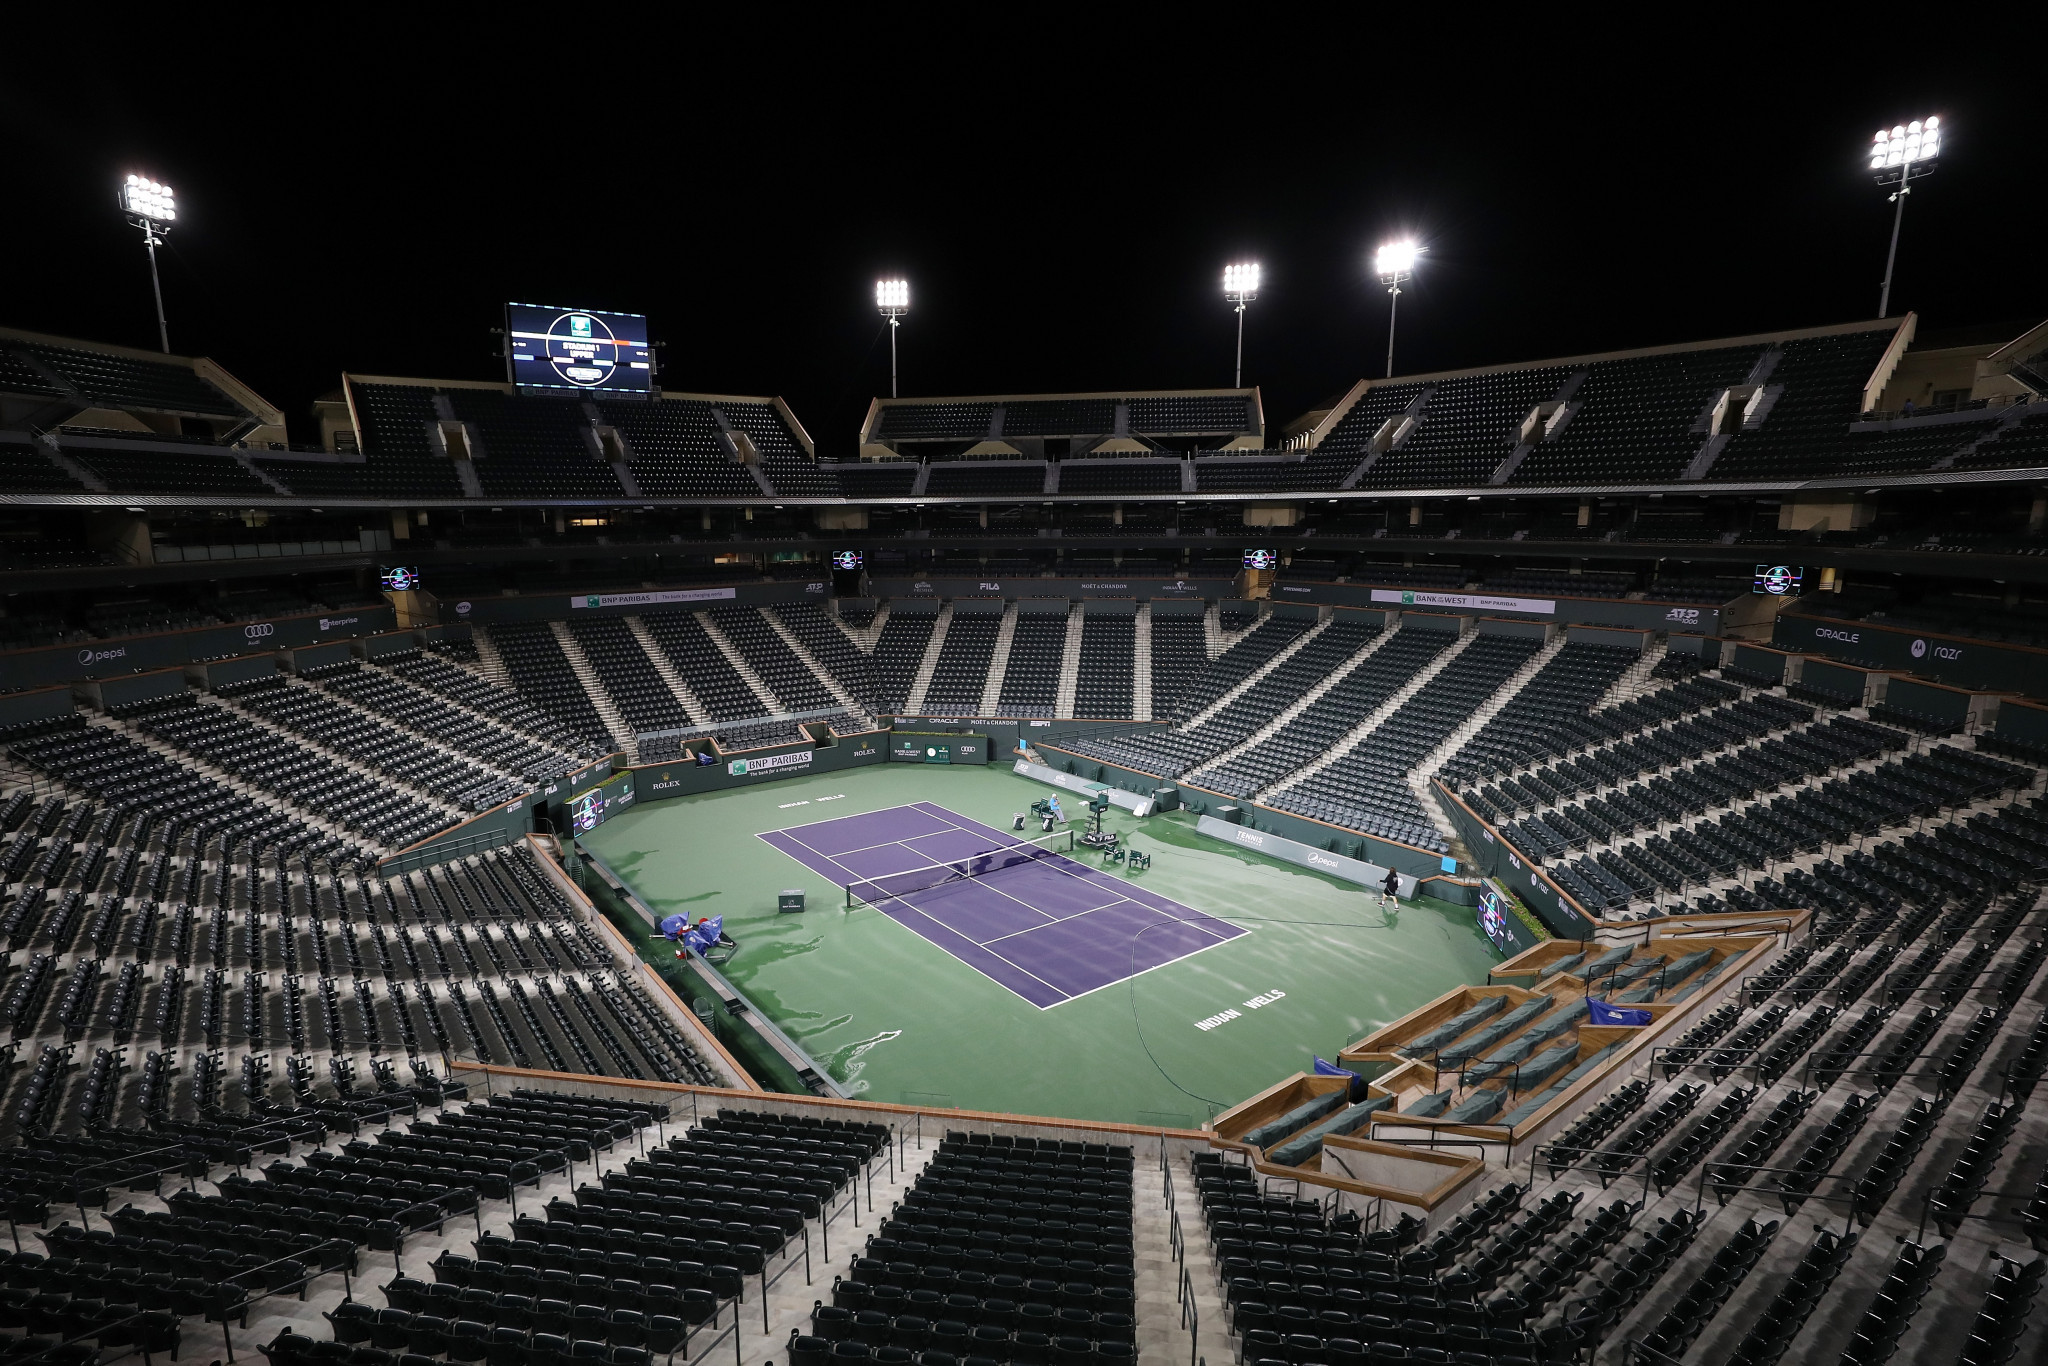 Indian Wells has emerged as a possible venue for the 2020 US Open ©Getty Images